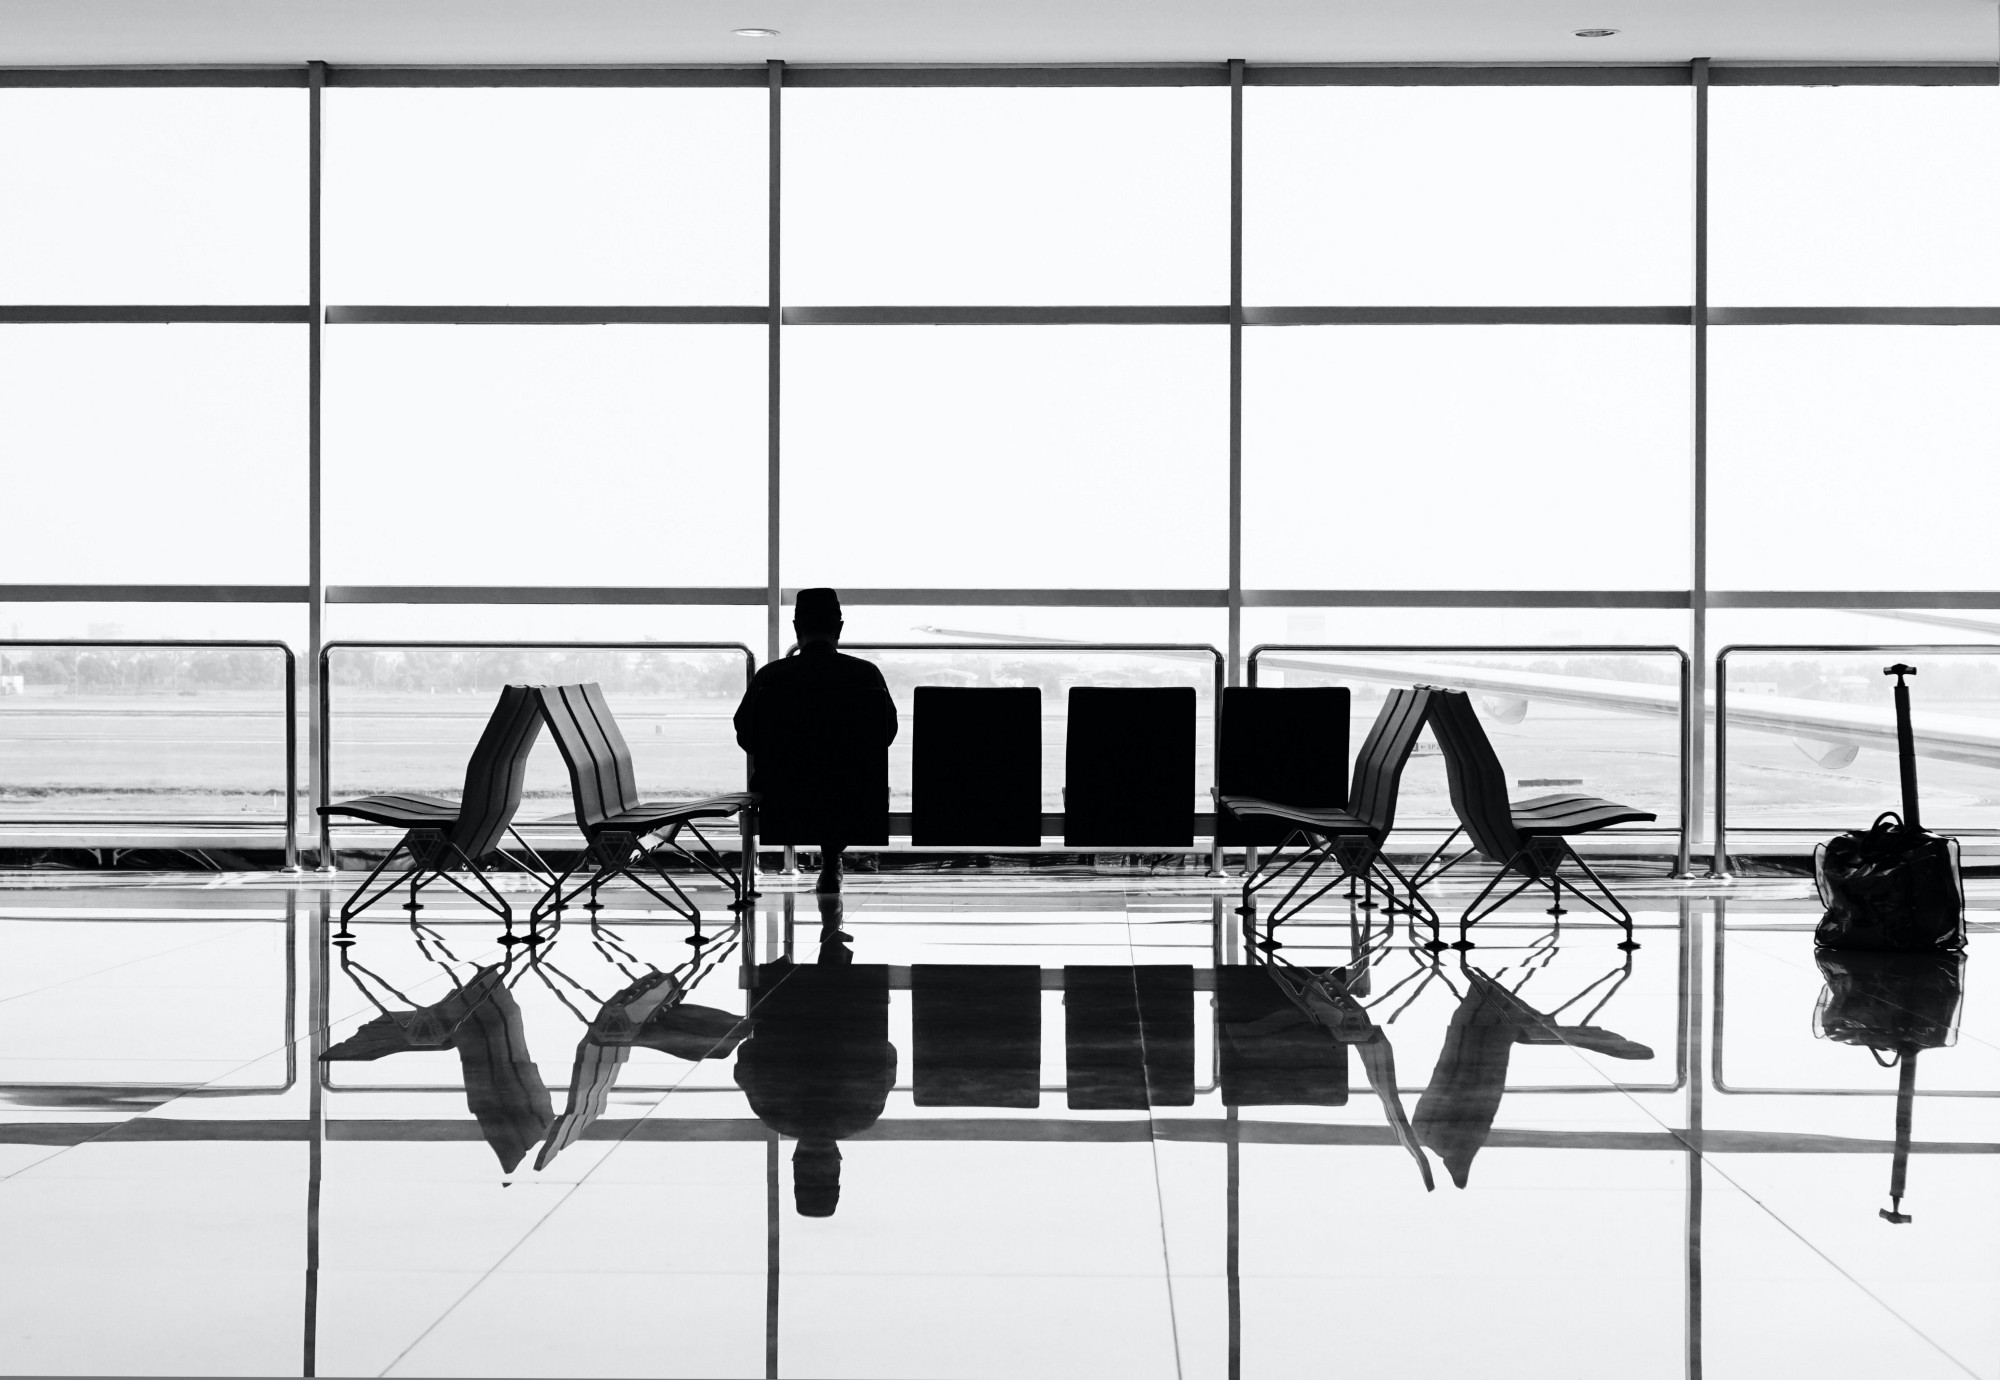 A photo of a man sitting in a gate terminal of an airport